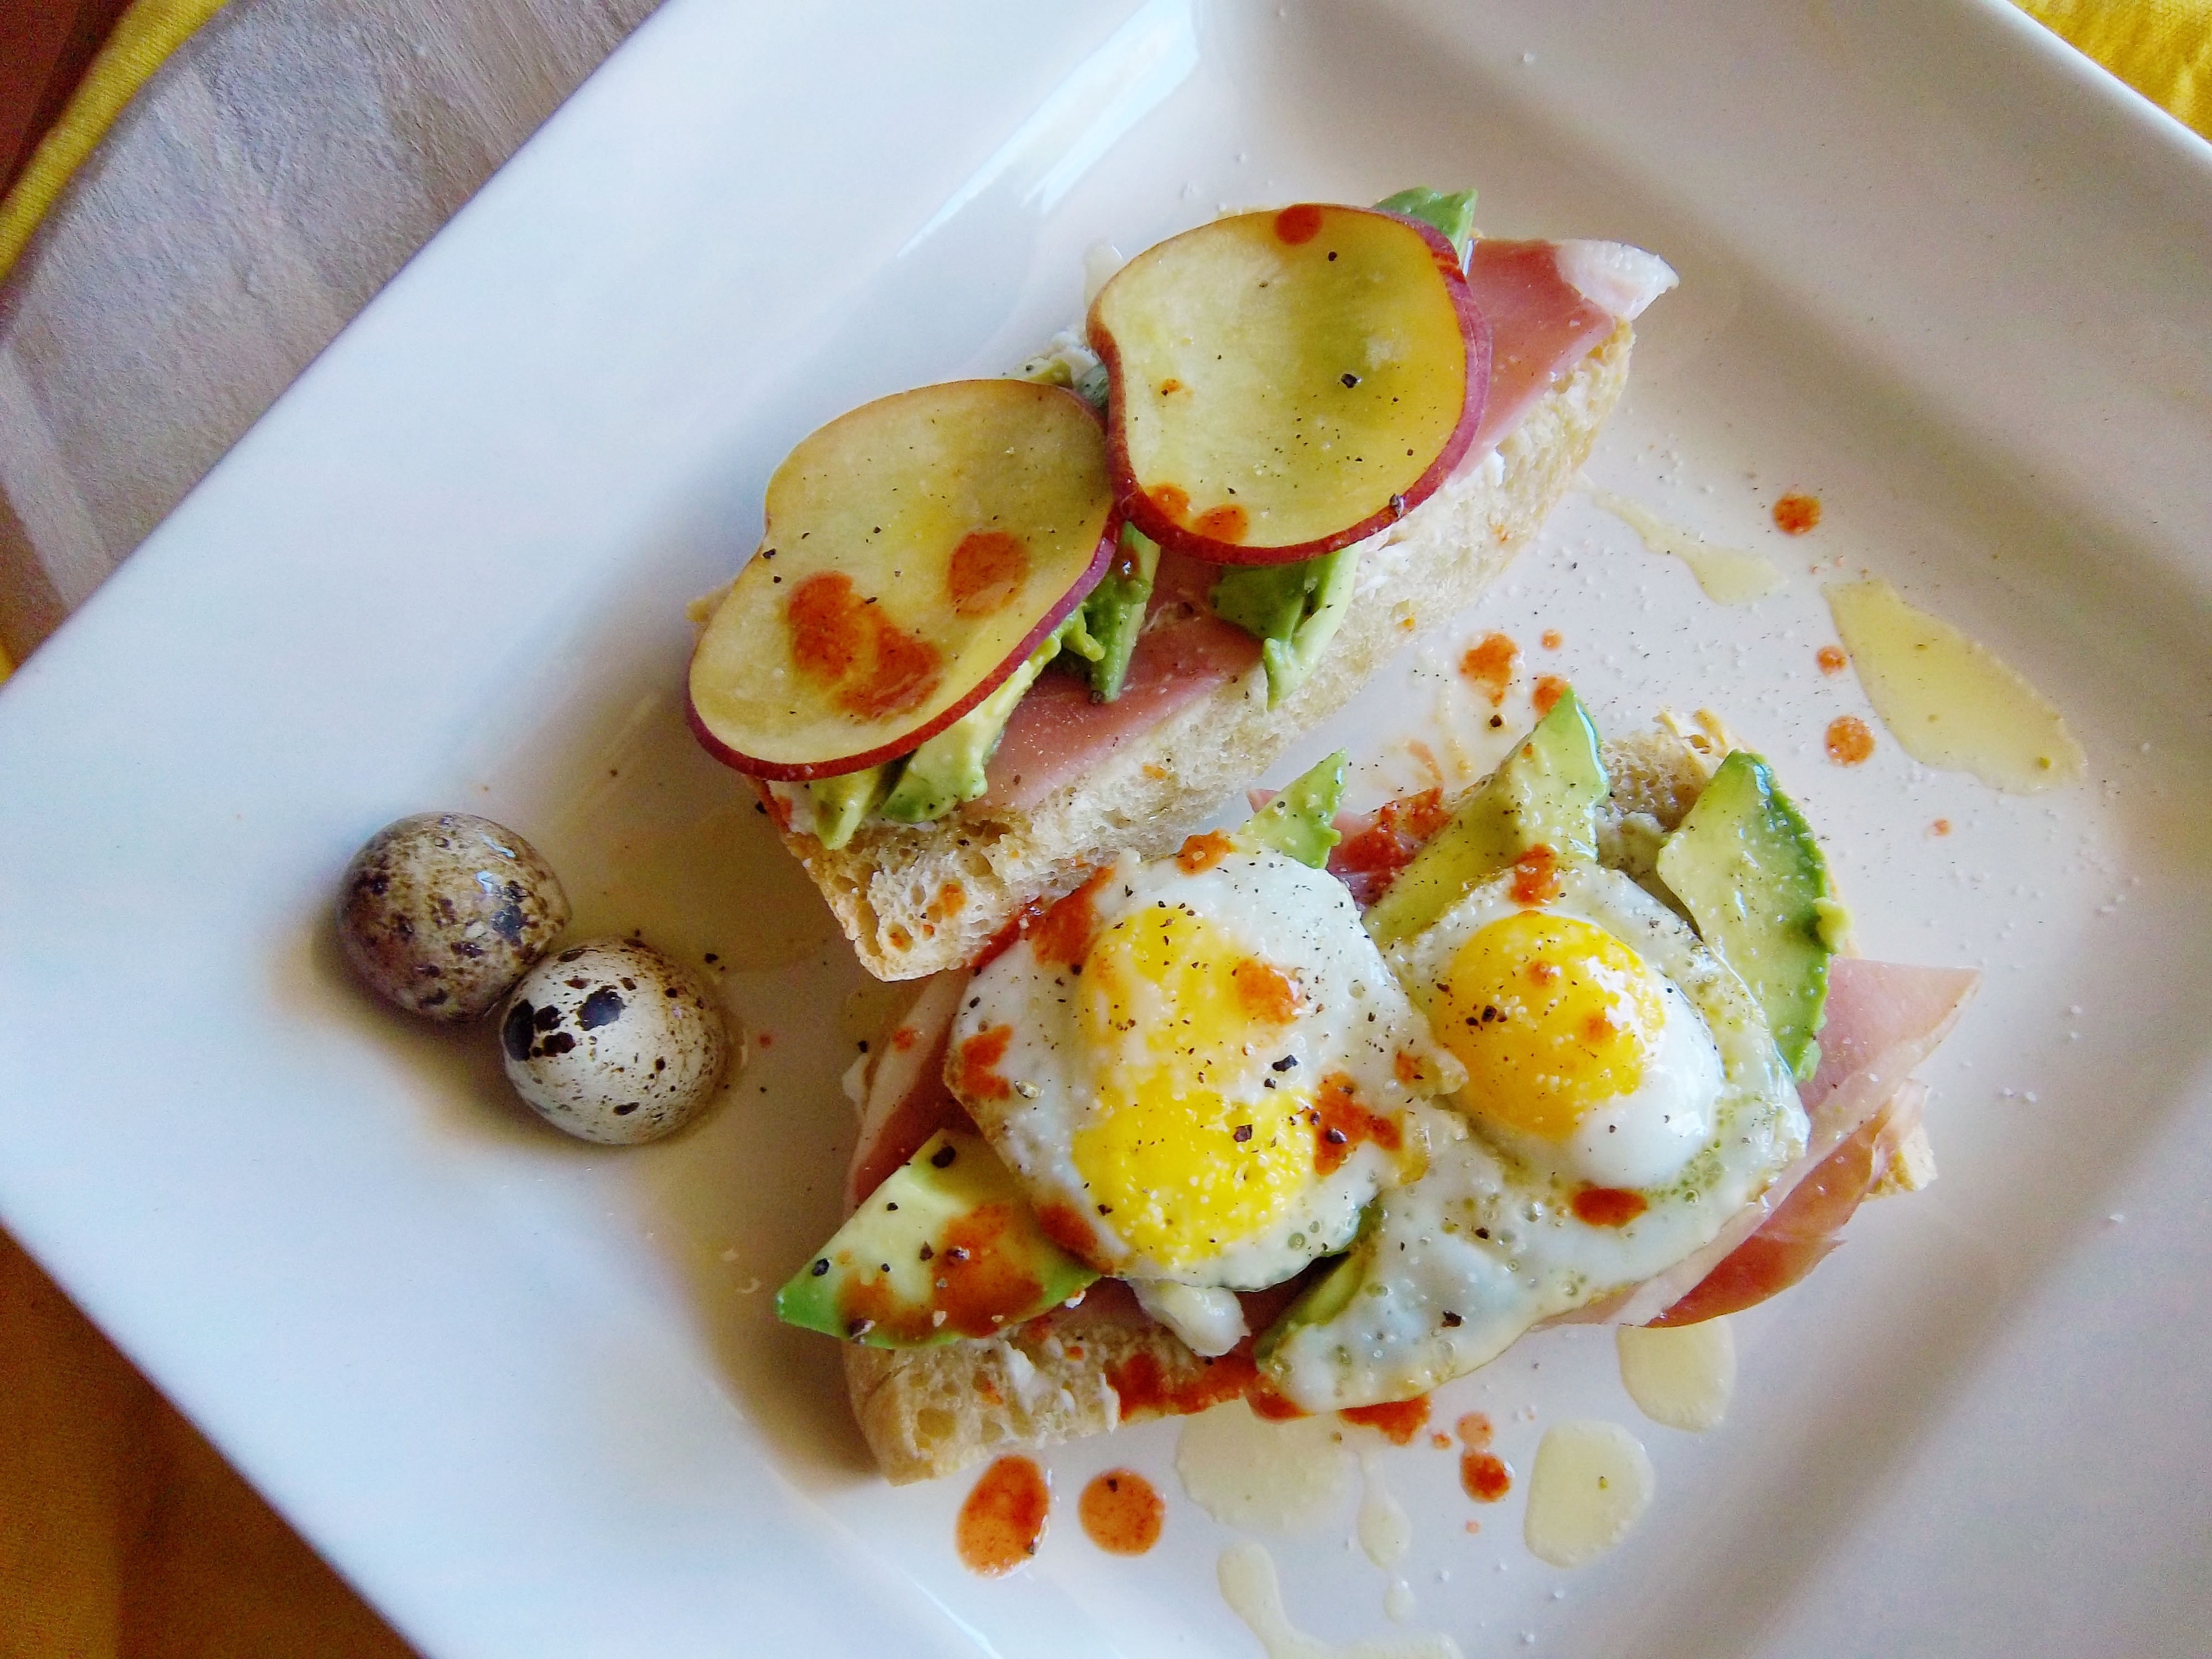 Avocado Tartine with Quail Eggs, Prosciutto & Goat Cheese